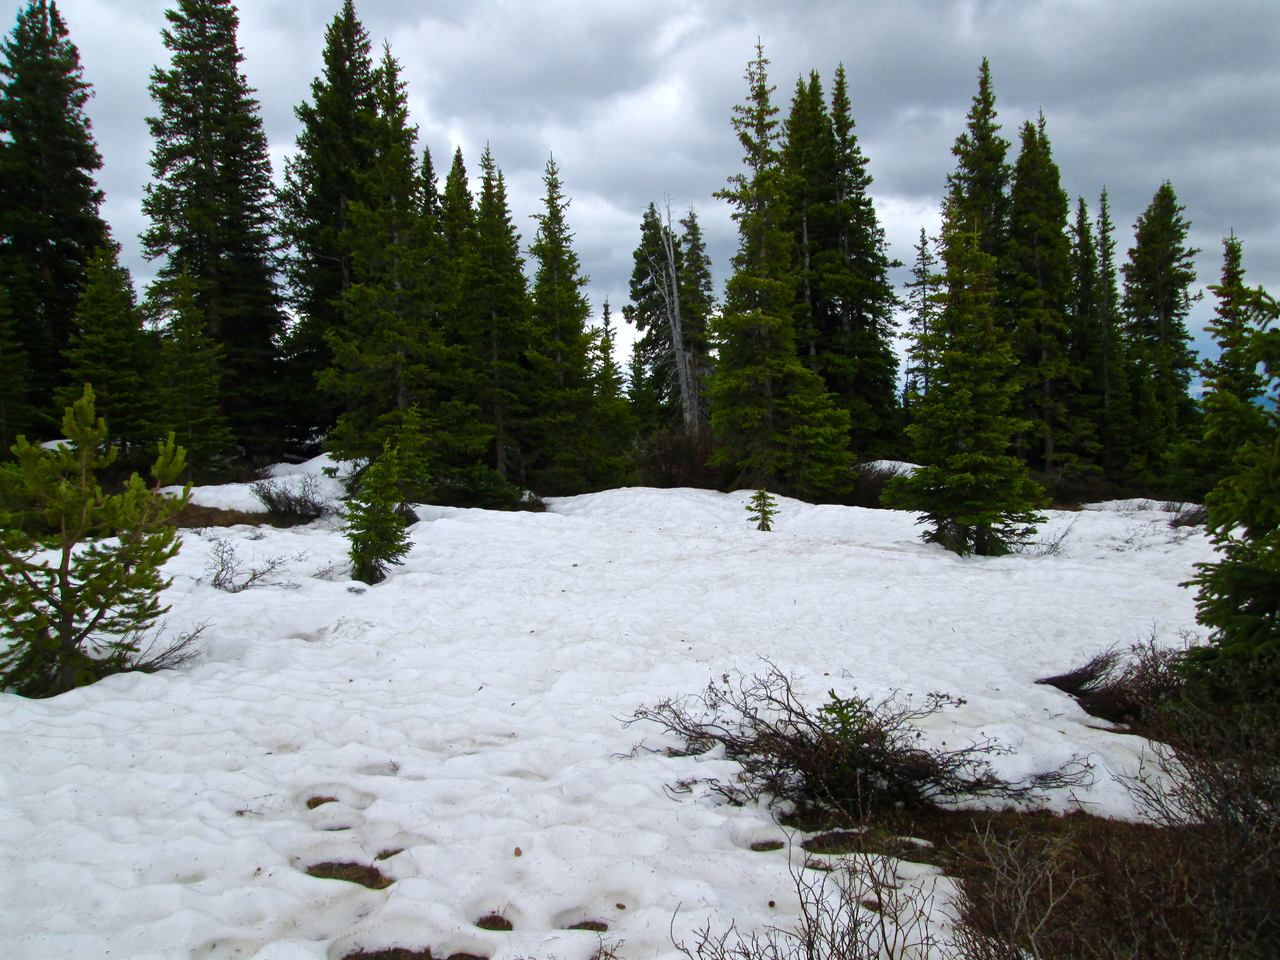 The Hoosier Pass CODOS site on June 16, 2015, near treeline, with rapidly melting and highly variable snowcover.